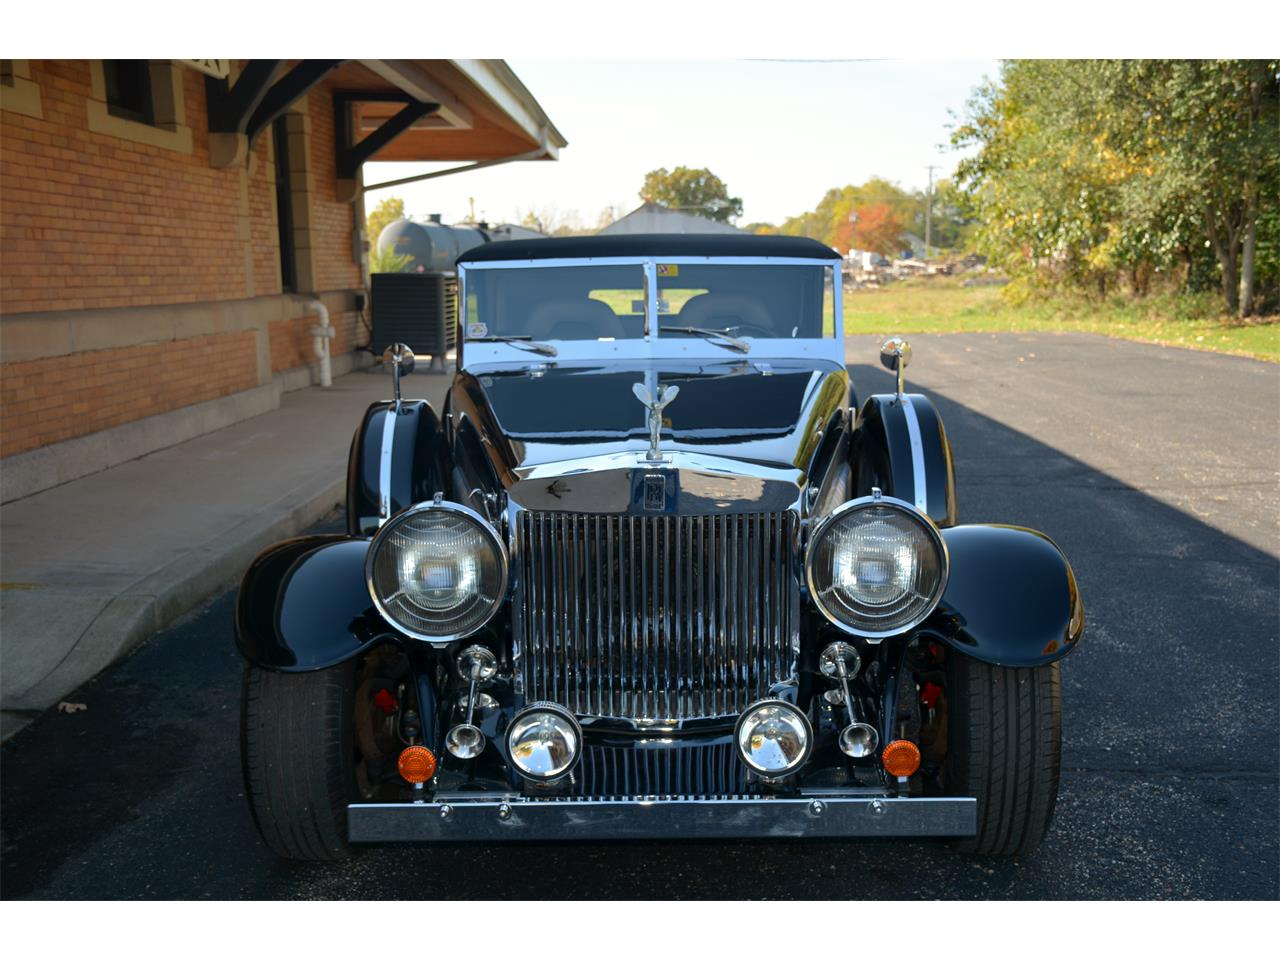 1931 Rolls-Royce Phantom II for sale in White Pigeon, MI – photo 8